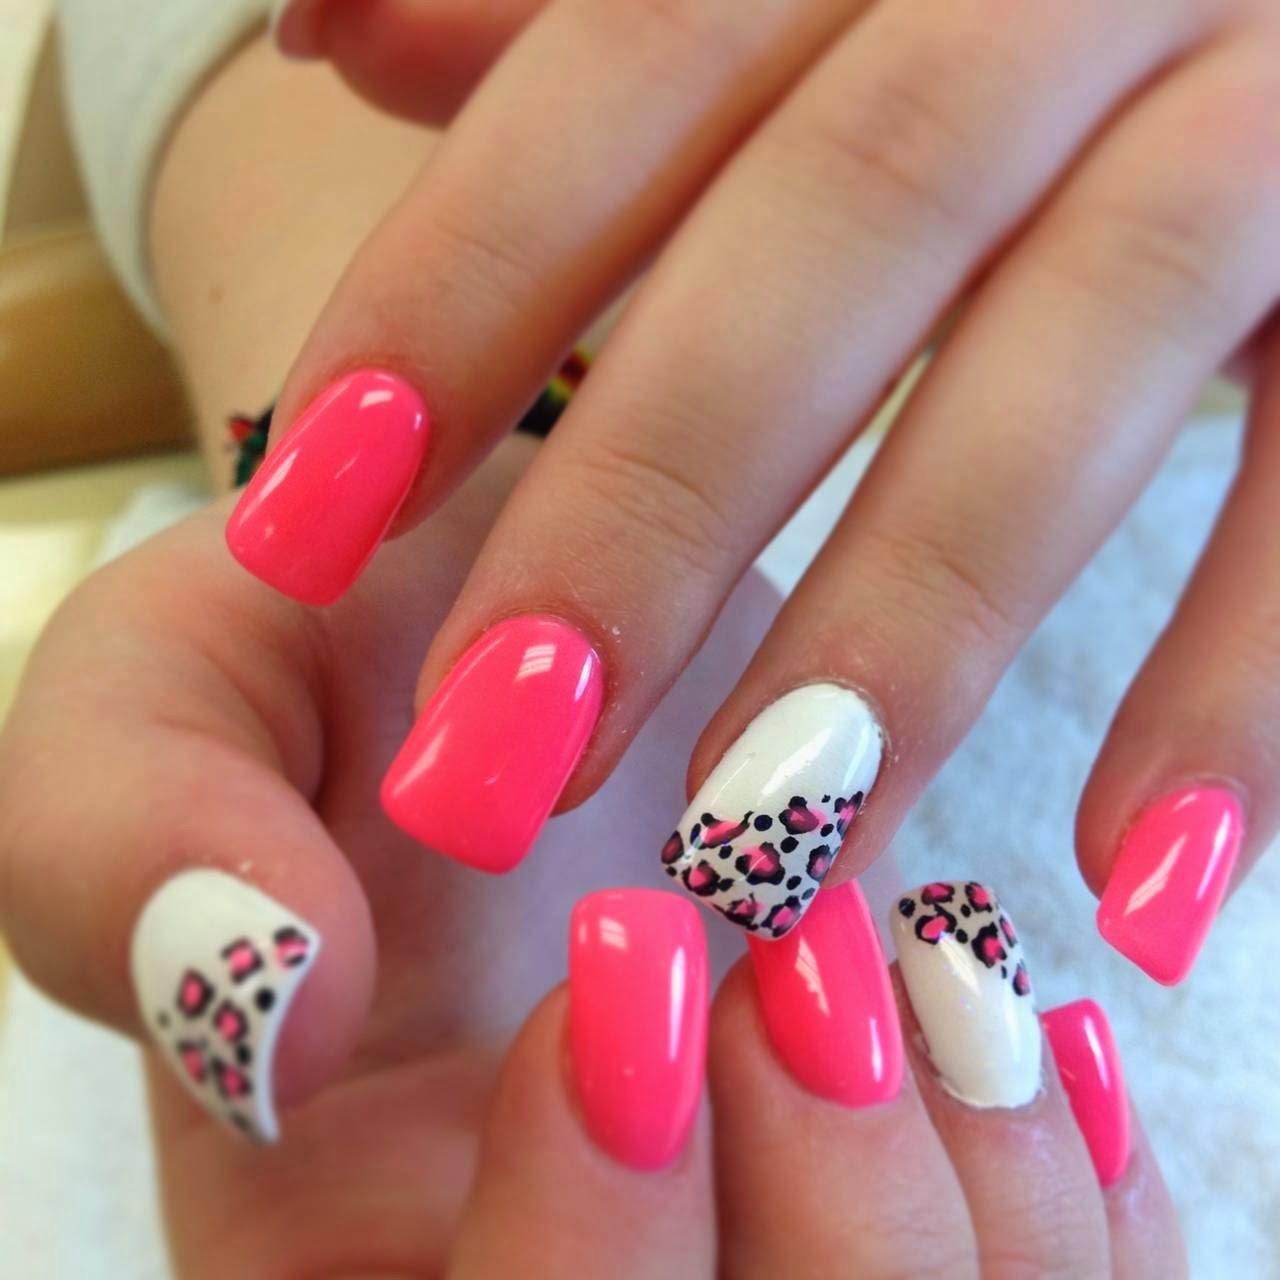 Summer Acrylic Nail Designs regarding The Most Brilliant acrylic nail designs 2014 intended for your reference